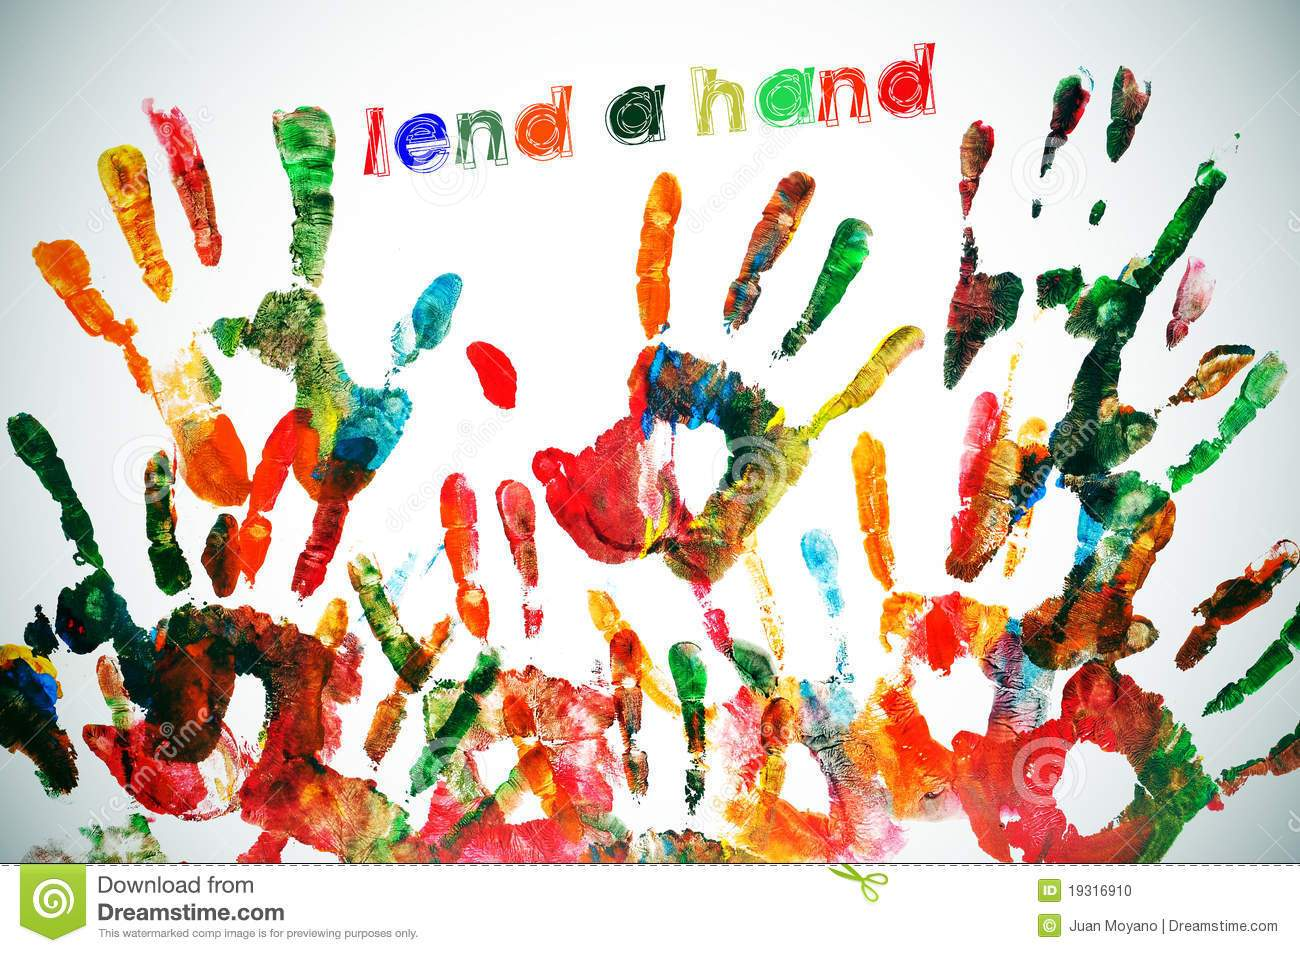 Lend a hand clipart svg black and white stock Lend a hand clipart 5 » Clipart Portal svg black and white stock